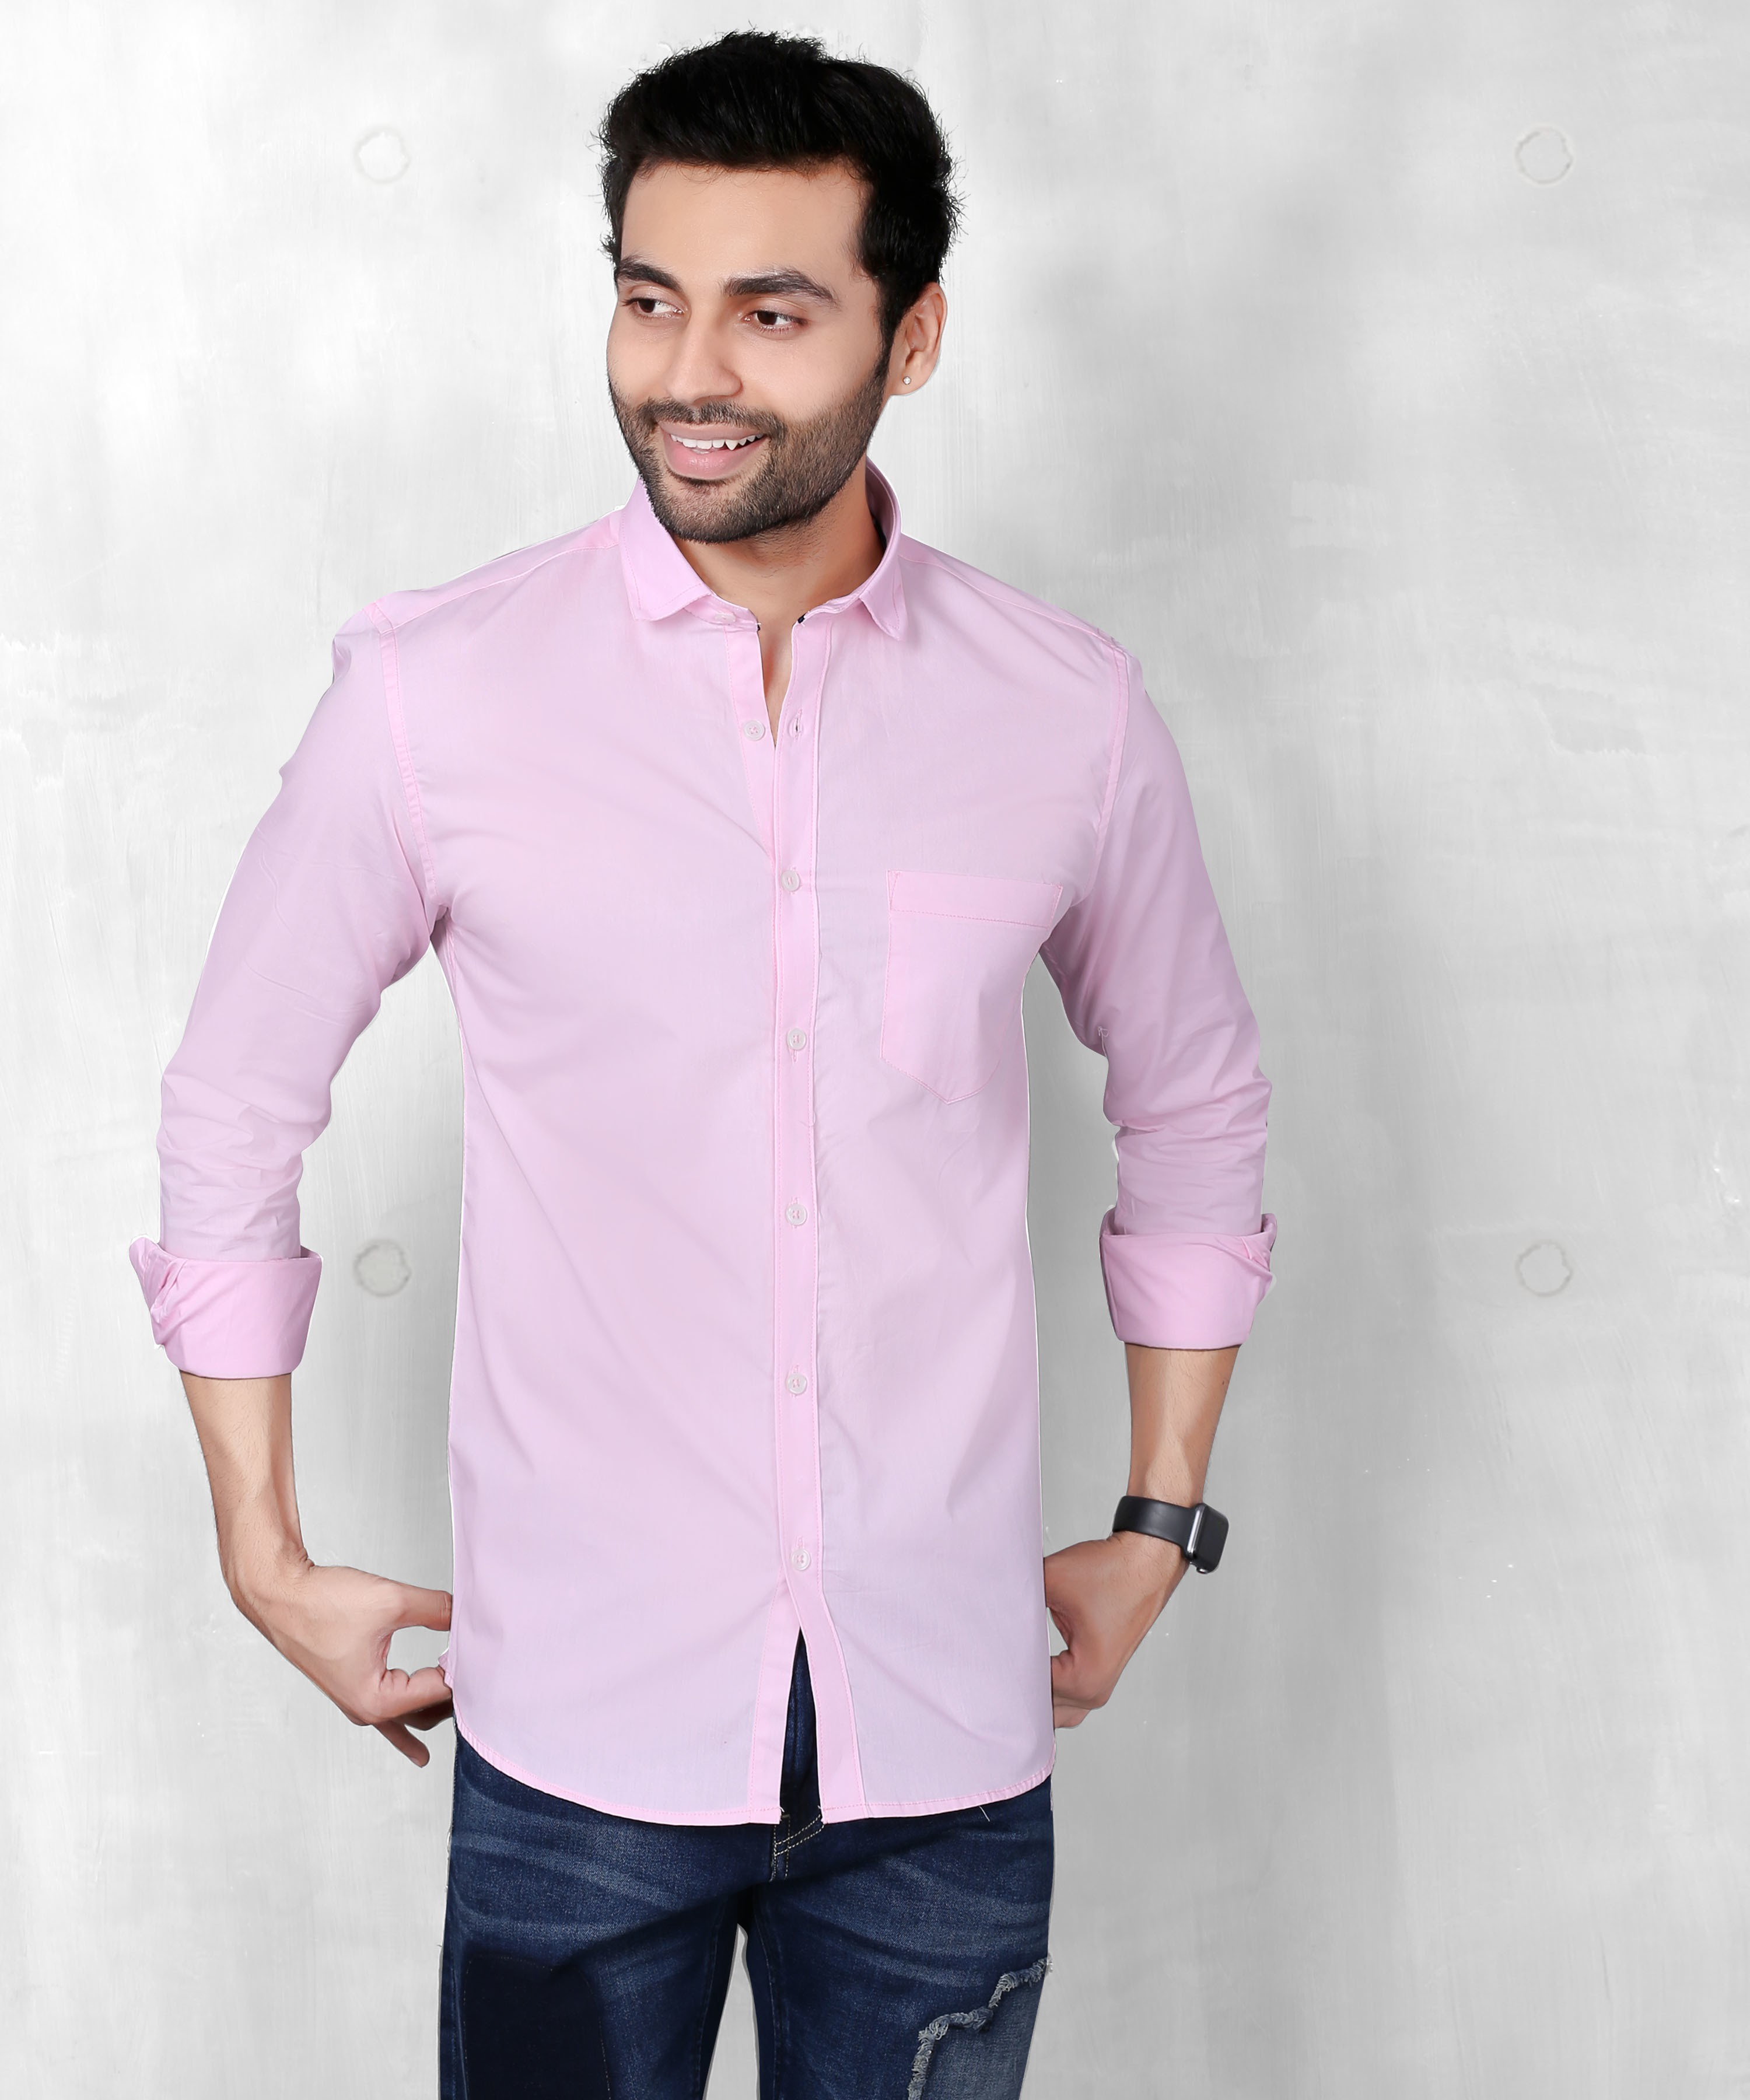 FIFTH ANFOLD Solid Pure Cotton Casual Full Long Sleev Pink Slim Collar Mens Shirt